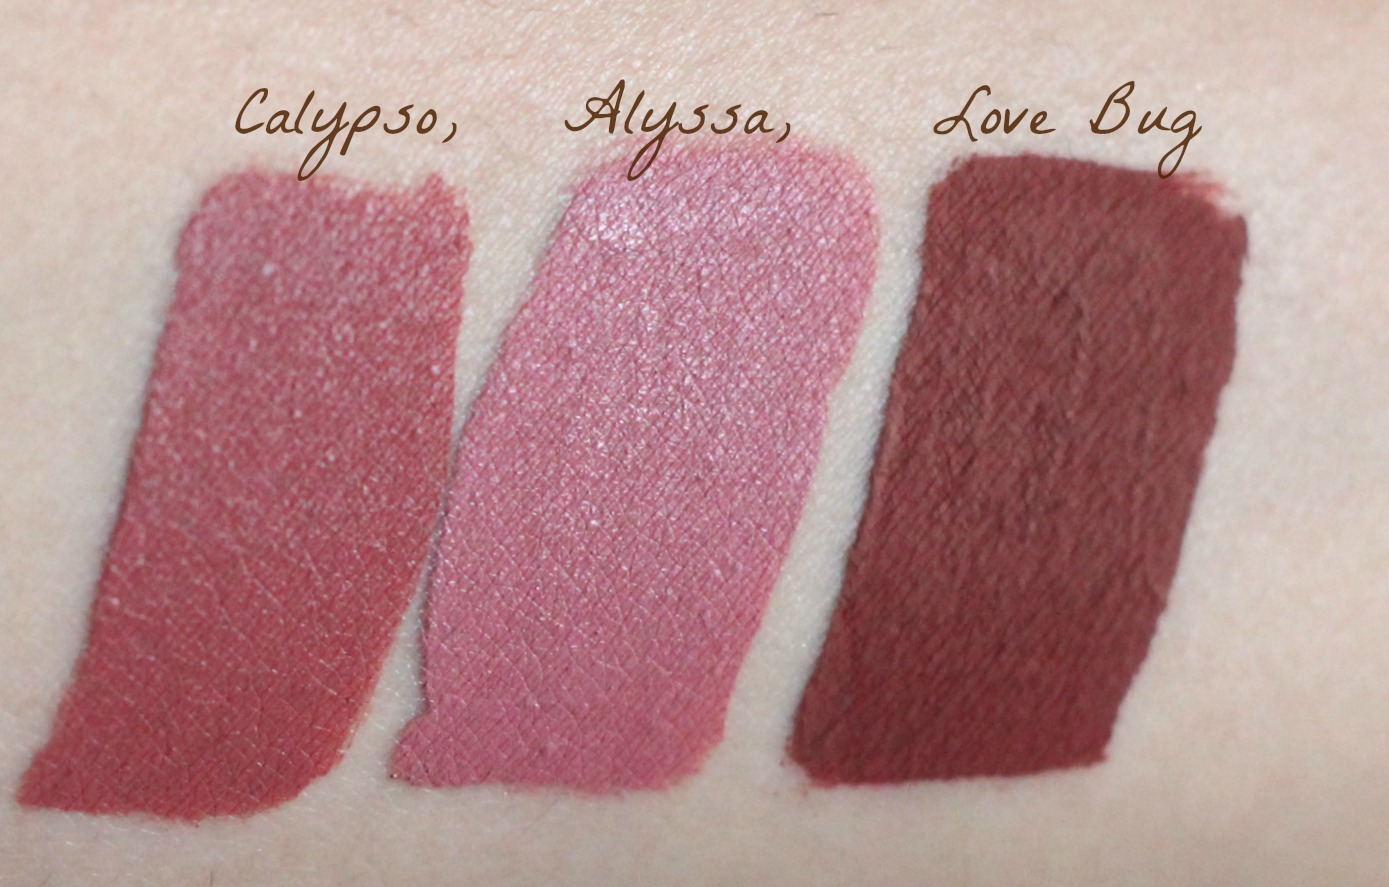 colourpop ultra matte lip in love bug review and swatch, ultra satin lip calypso, ultra satin lip in alyssa review and swatch